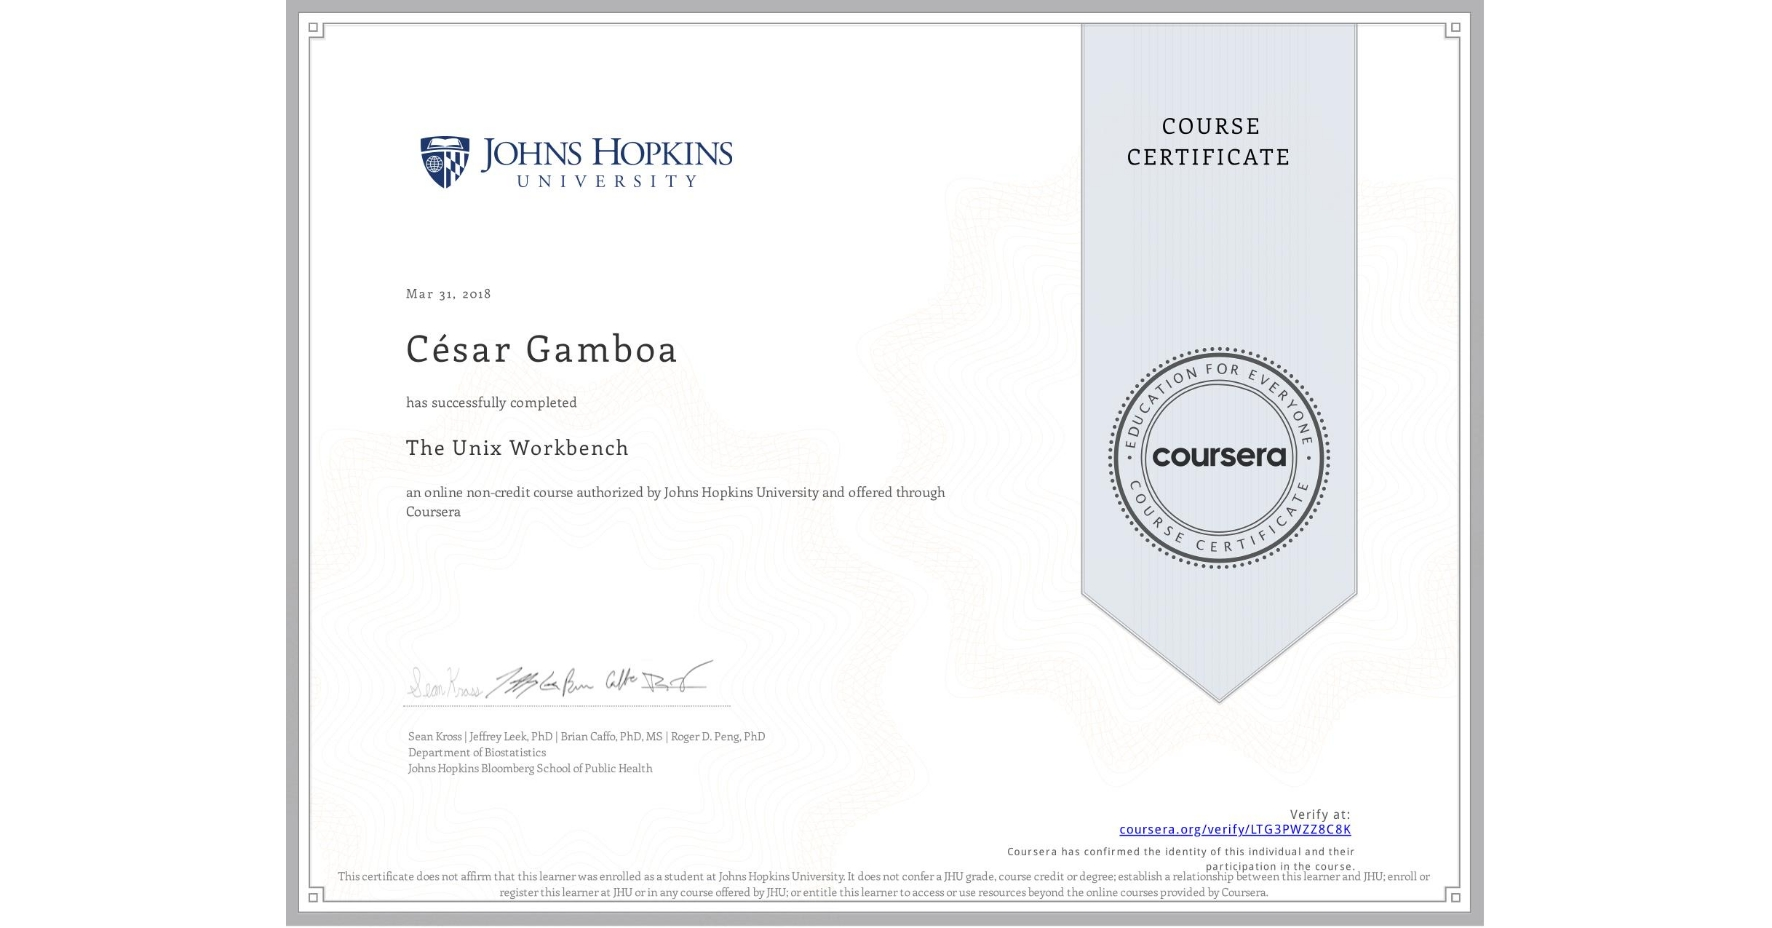 View certificate for César Gamboa, The Unix Workbench, an online non-credit course authorized by Johns Hopkins University and offered through Coursera